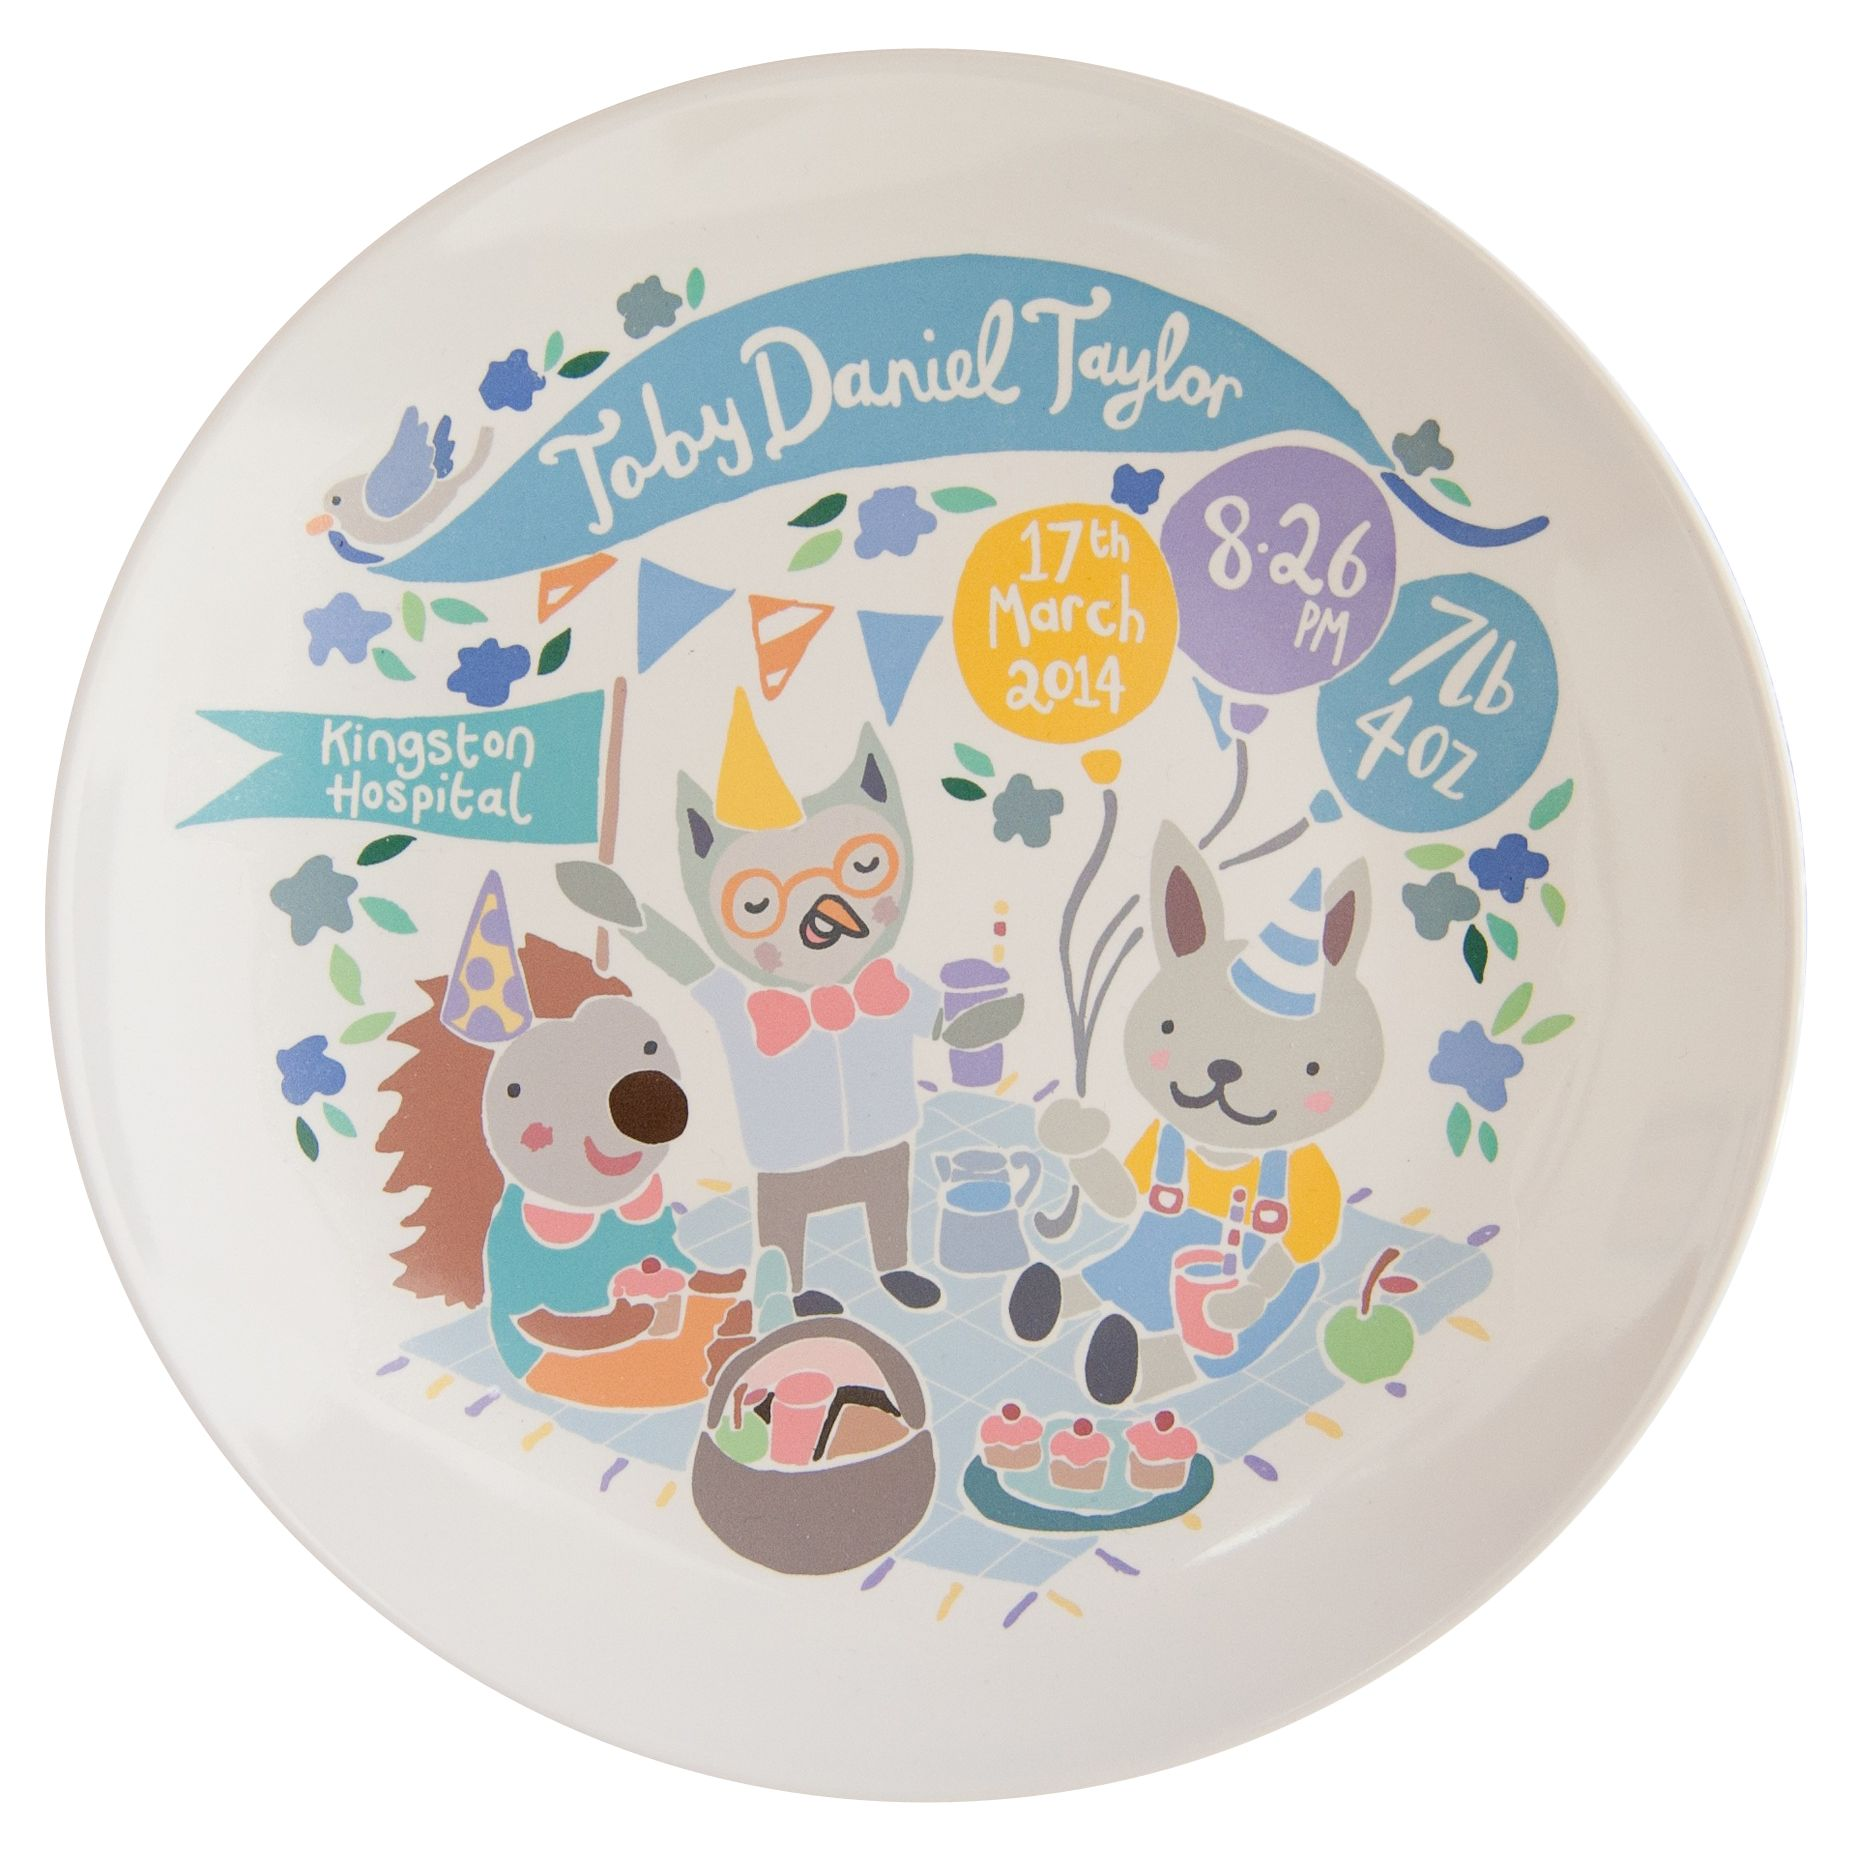 Ethel and Co Ethel and Co Personalised Woodland Picnic Decorative Plate, Blue